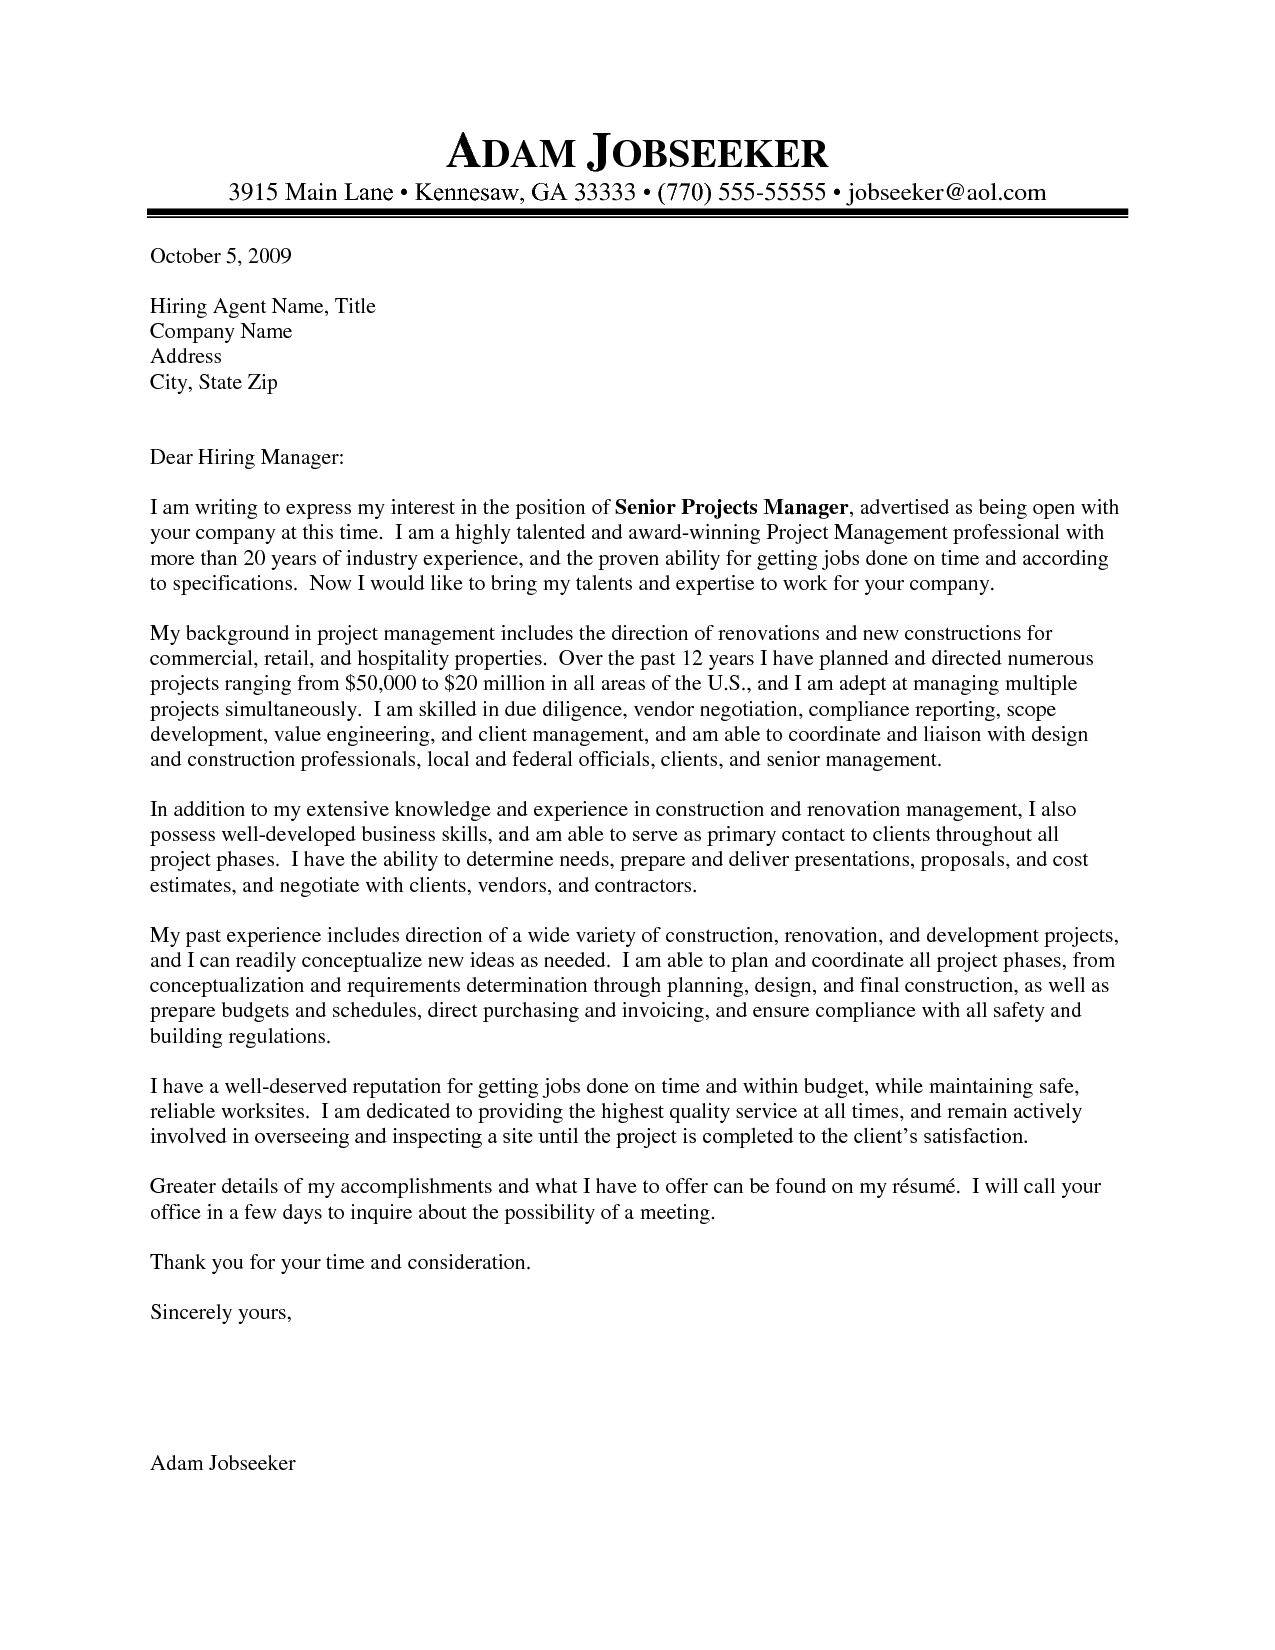 25+ Project Manager Cover Letter Project manager cover